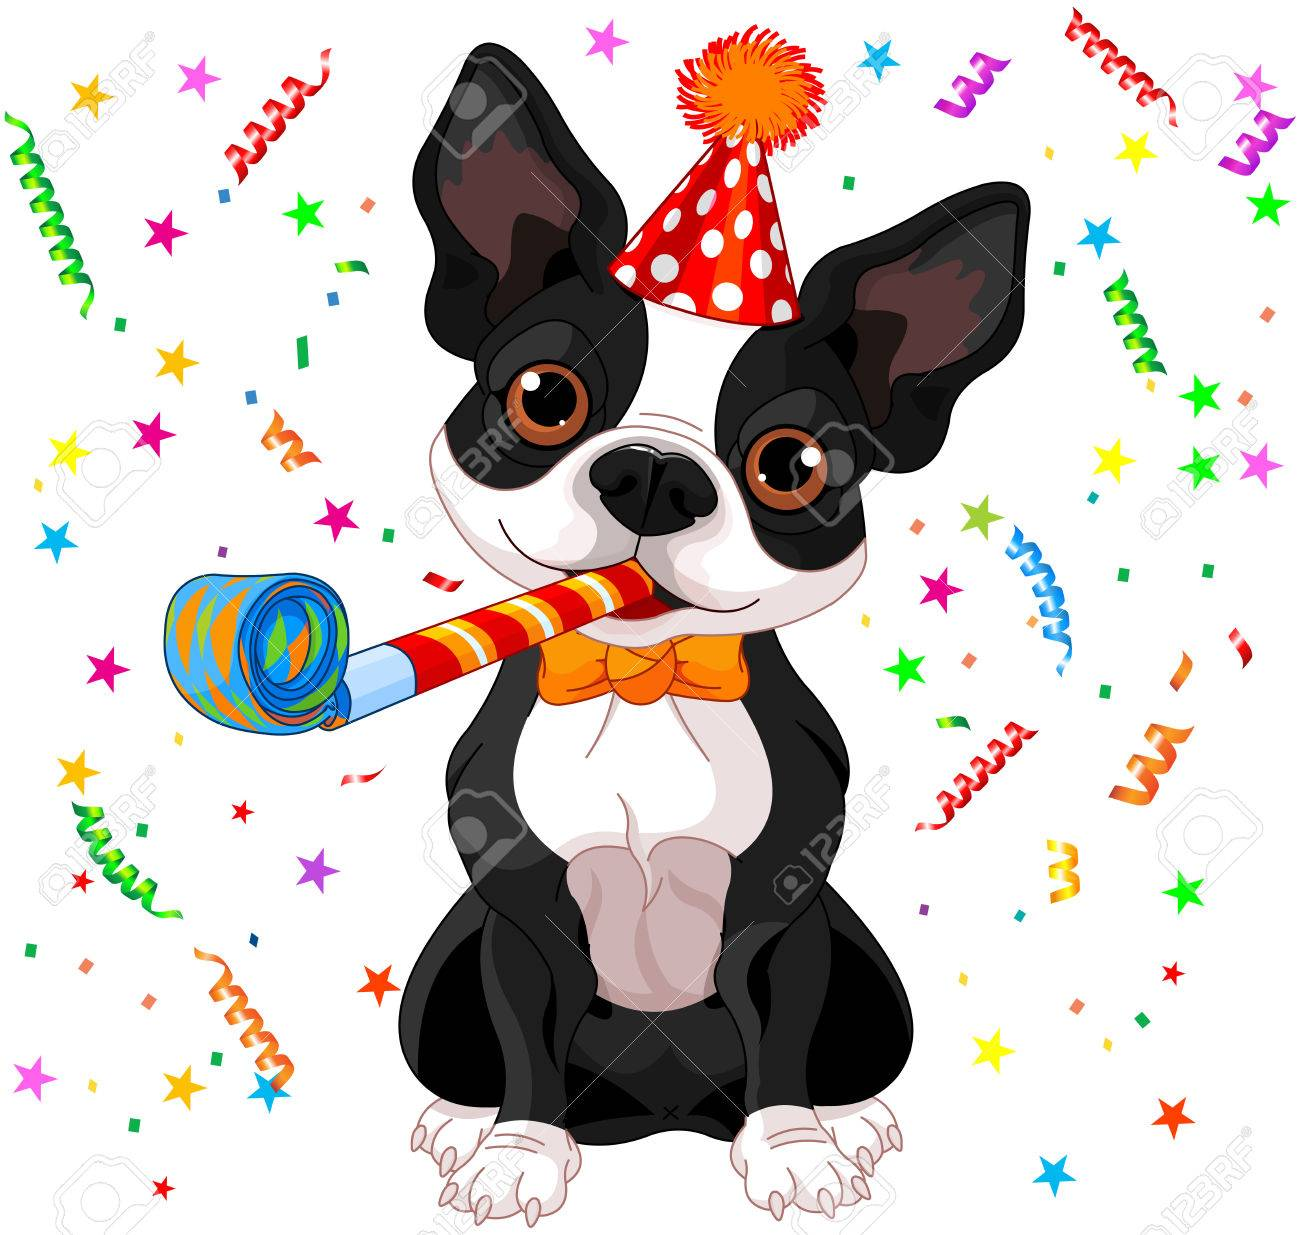 Dissuader les passants de caresser mon chiot 35588778-illustration-of-cute-boston-terrier-celebrating